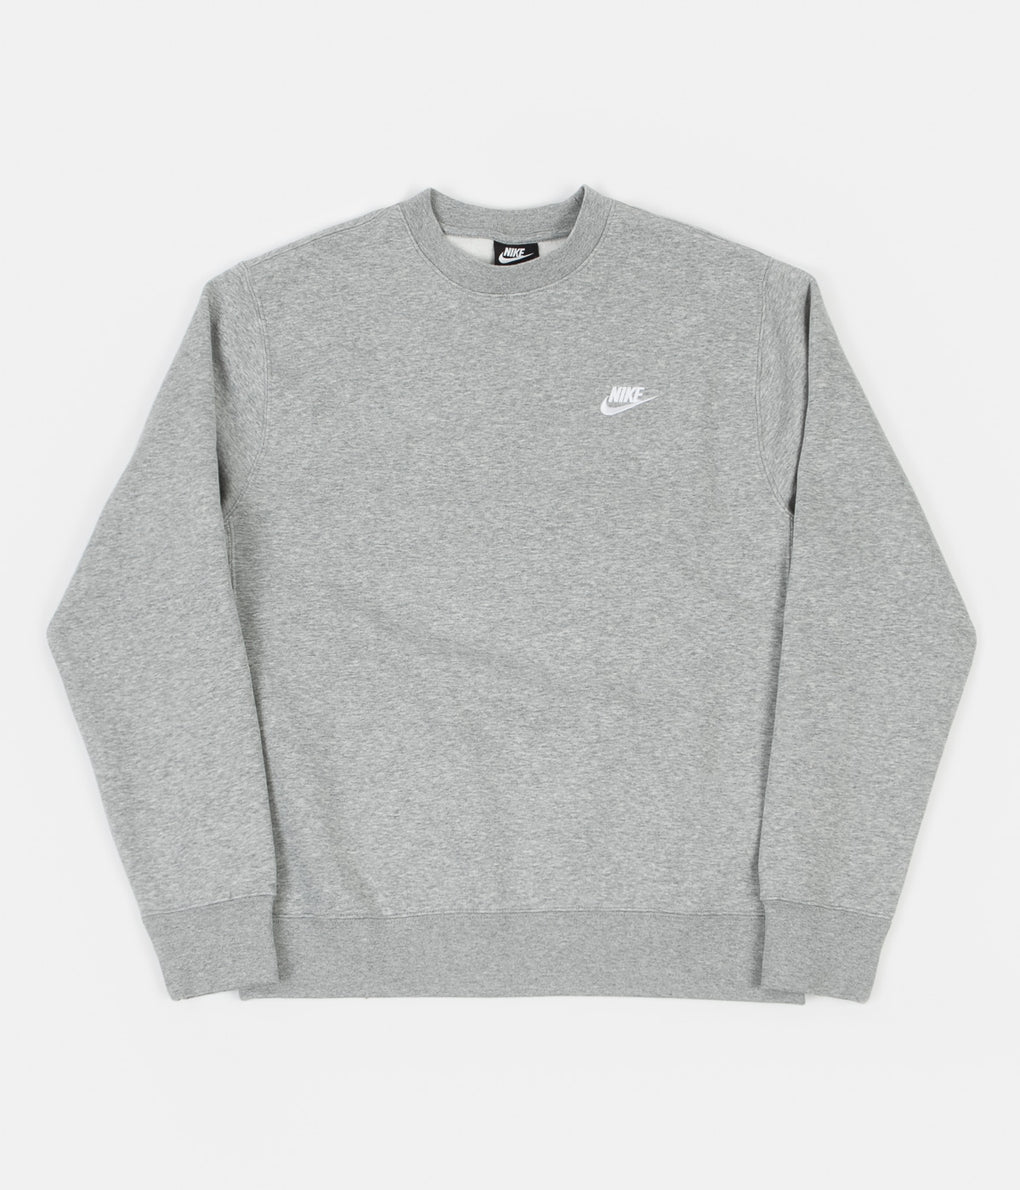 Nike Club Crewneck Sweatshirt - Dark Grey Heather / White